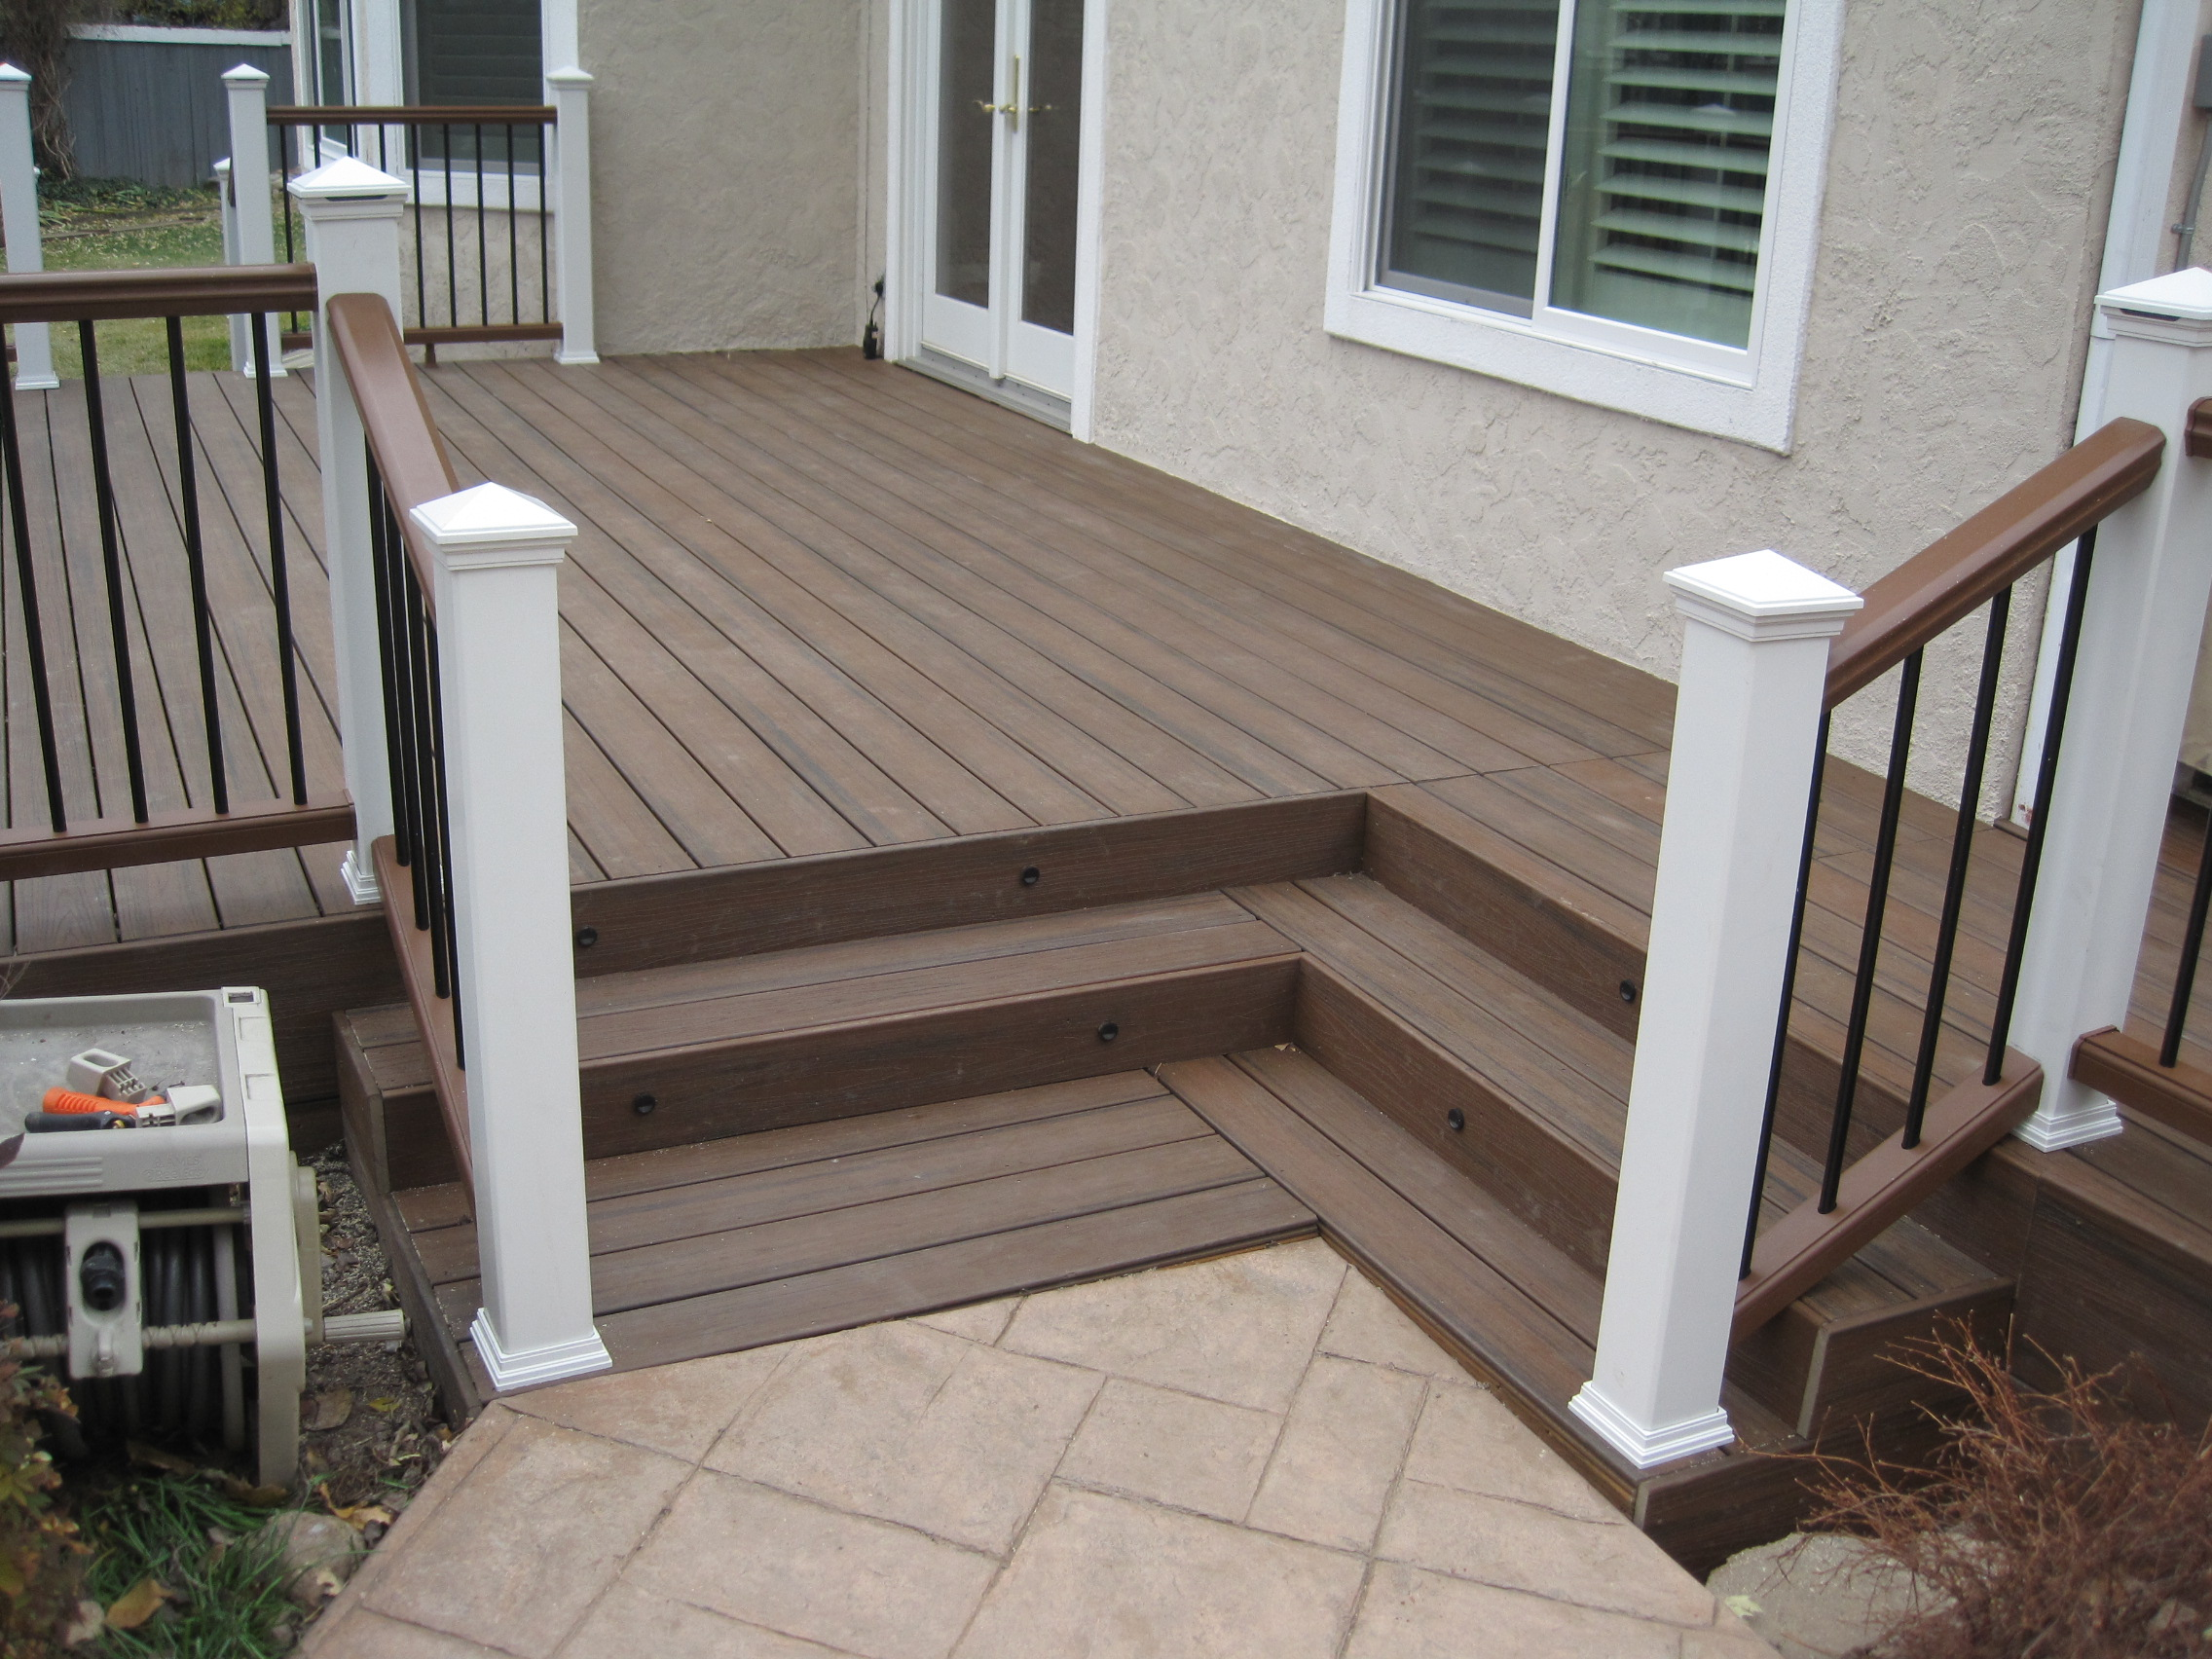 standard trex decking cost with hight quality of wood material matched with cute railing for patio decor ideas